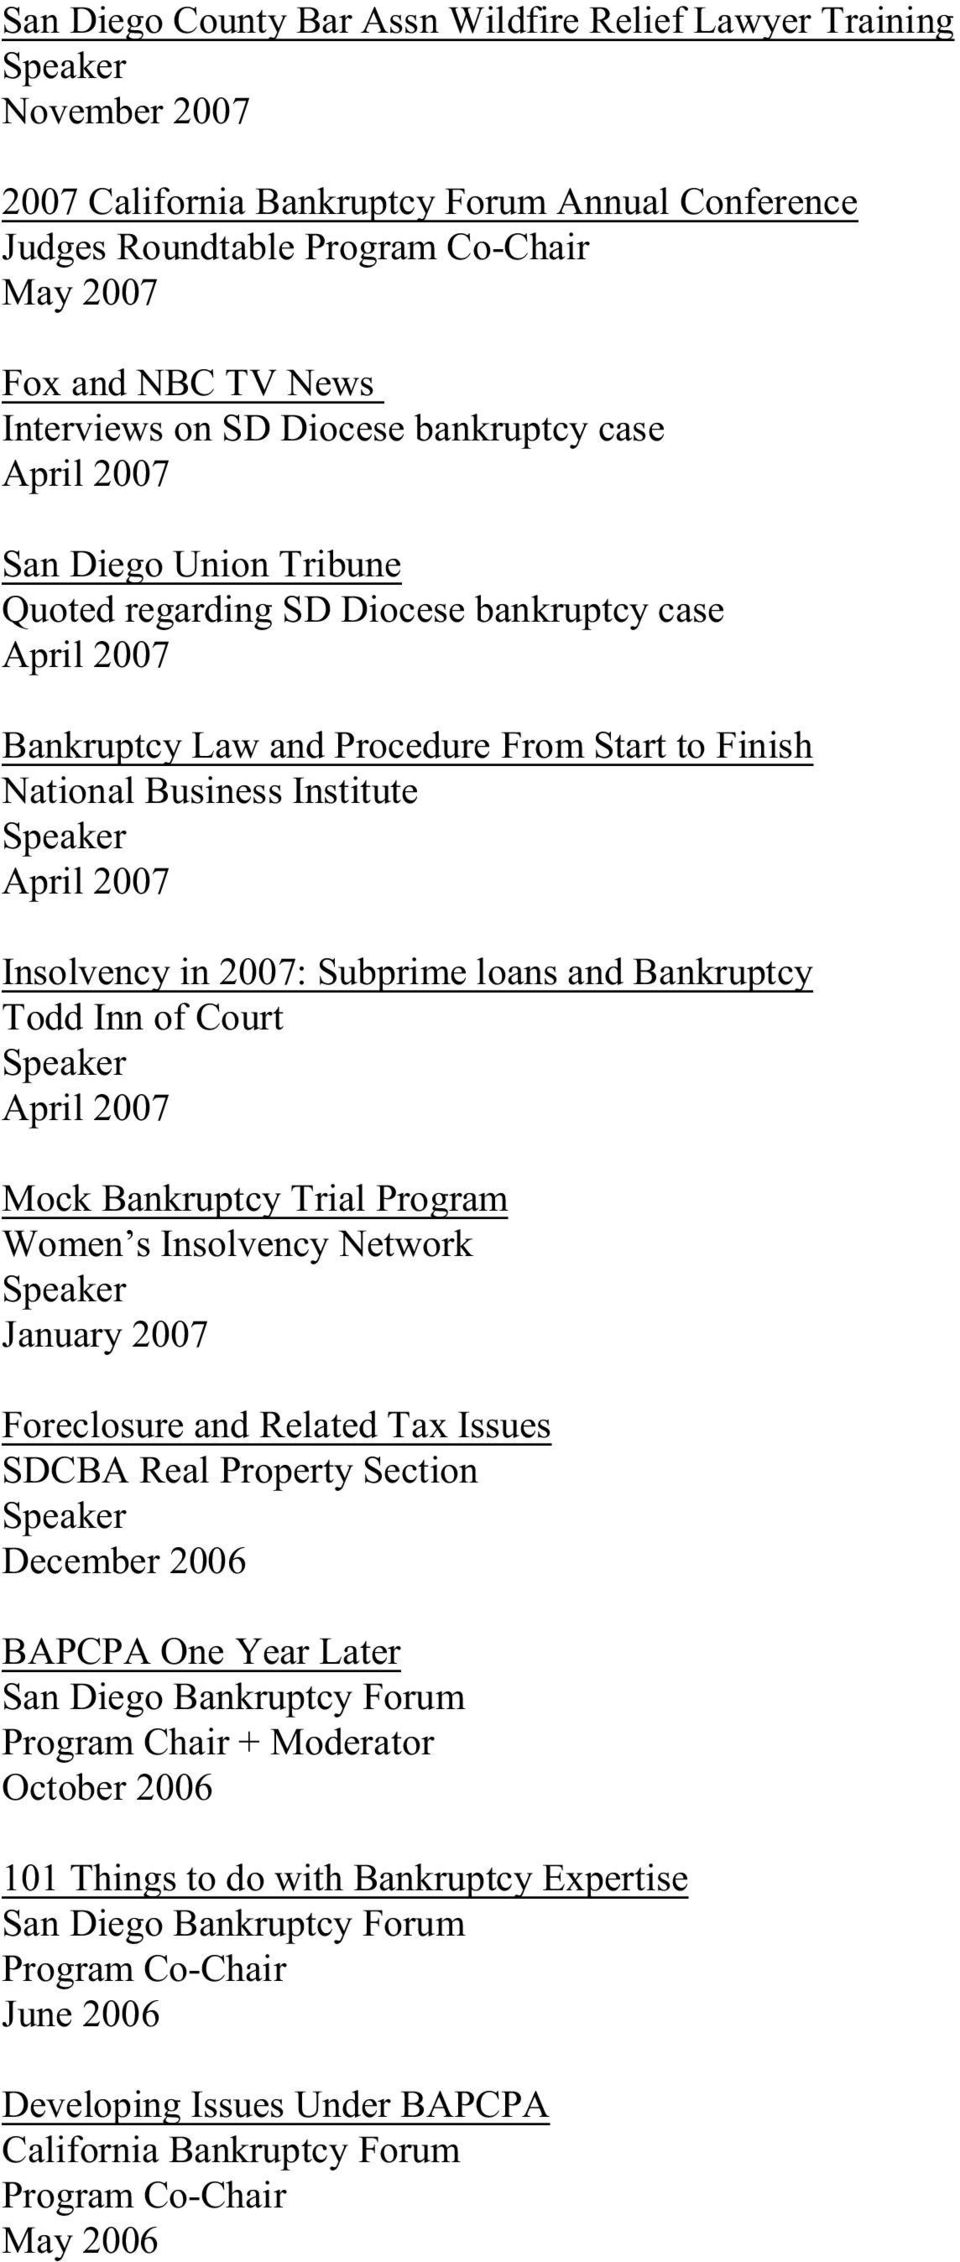 Court Mock Bankruptcy Trial Program Women s Insolvency Network January 2007 Foreclosure and Related Tax Issues SDCBA Real Property Section December 2006 BAPCPA One Year Later San Diego Bankruptcy